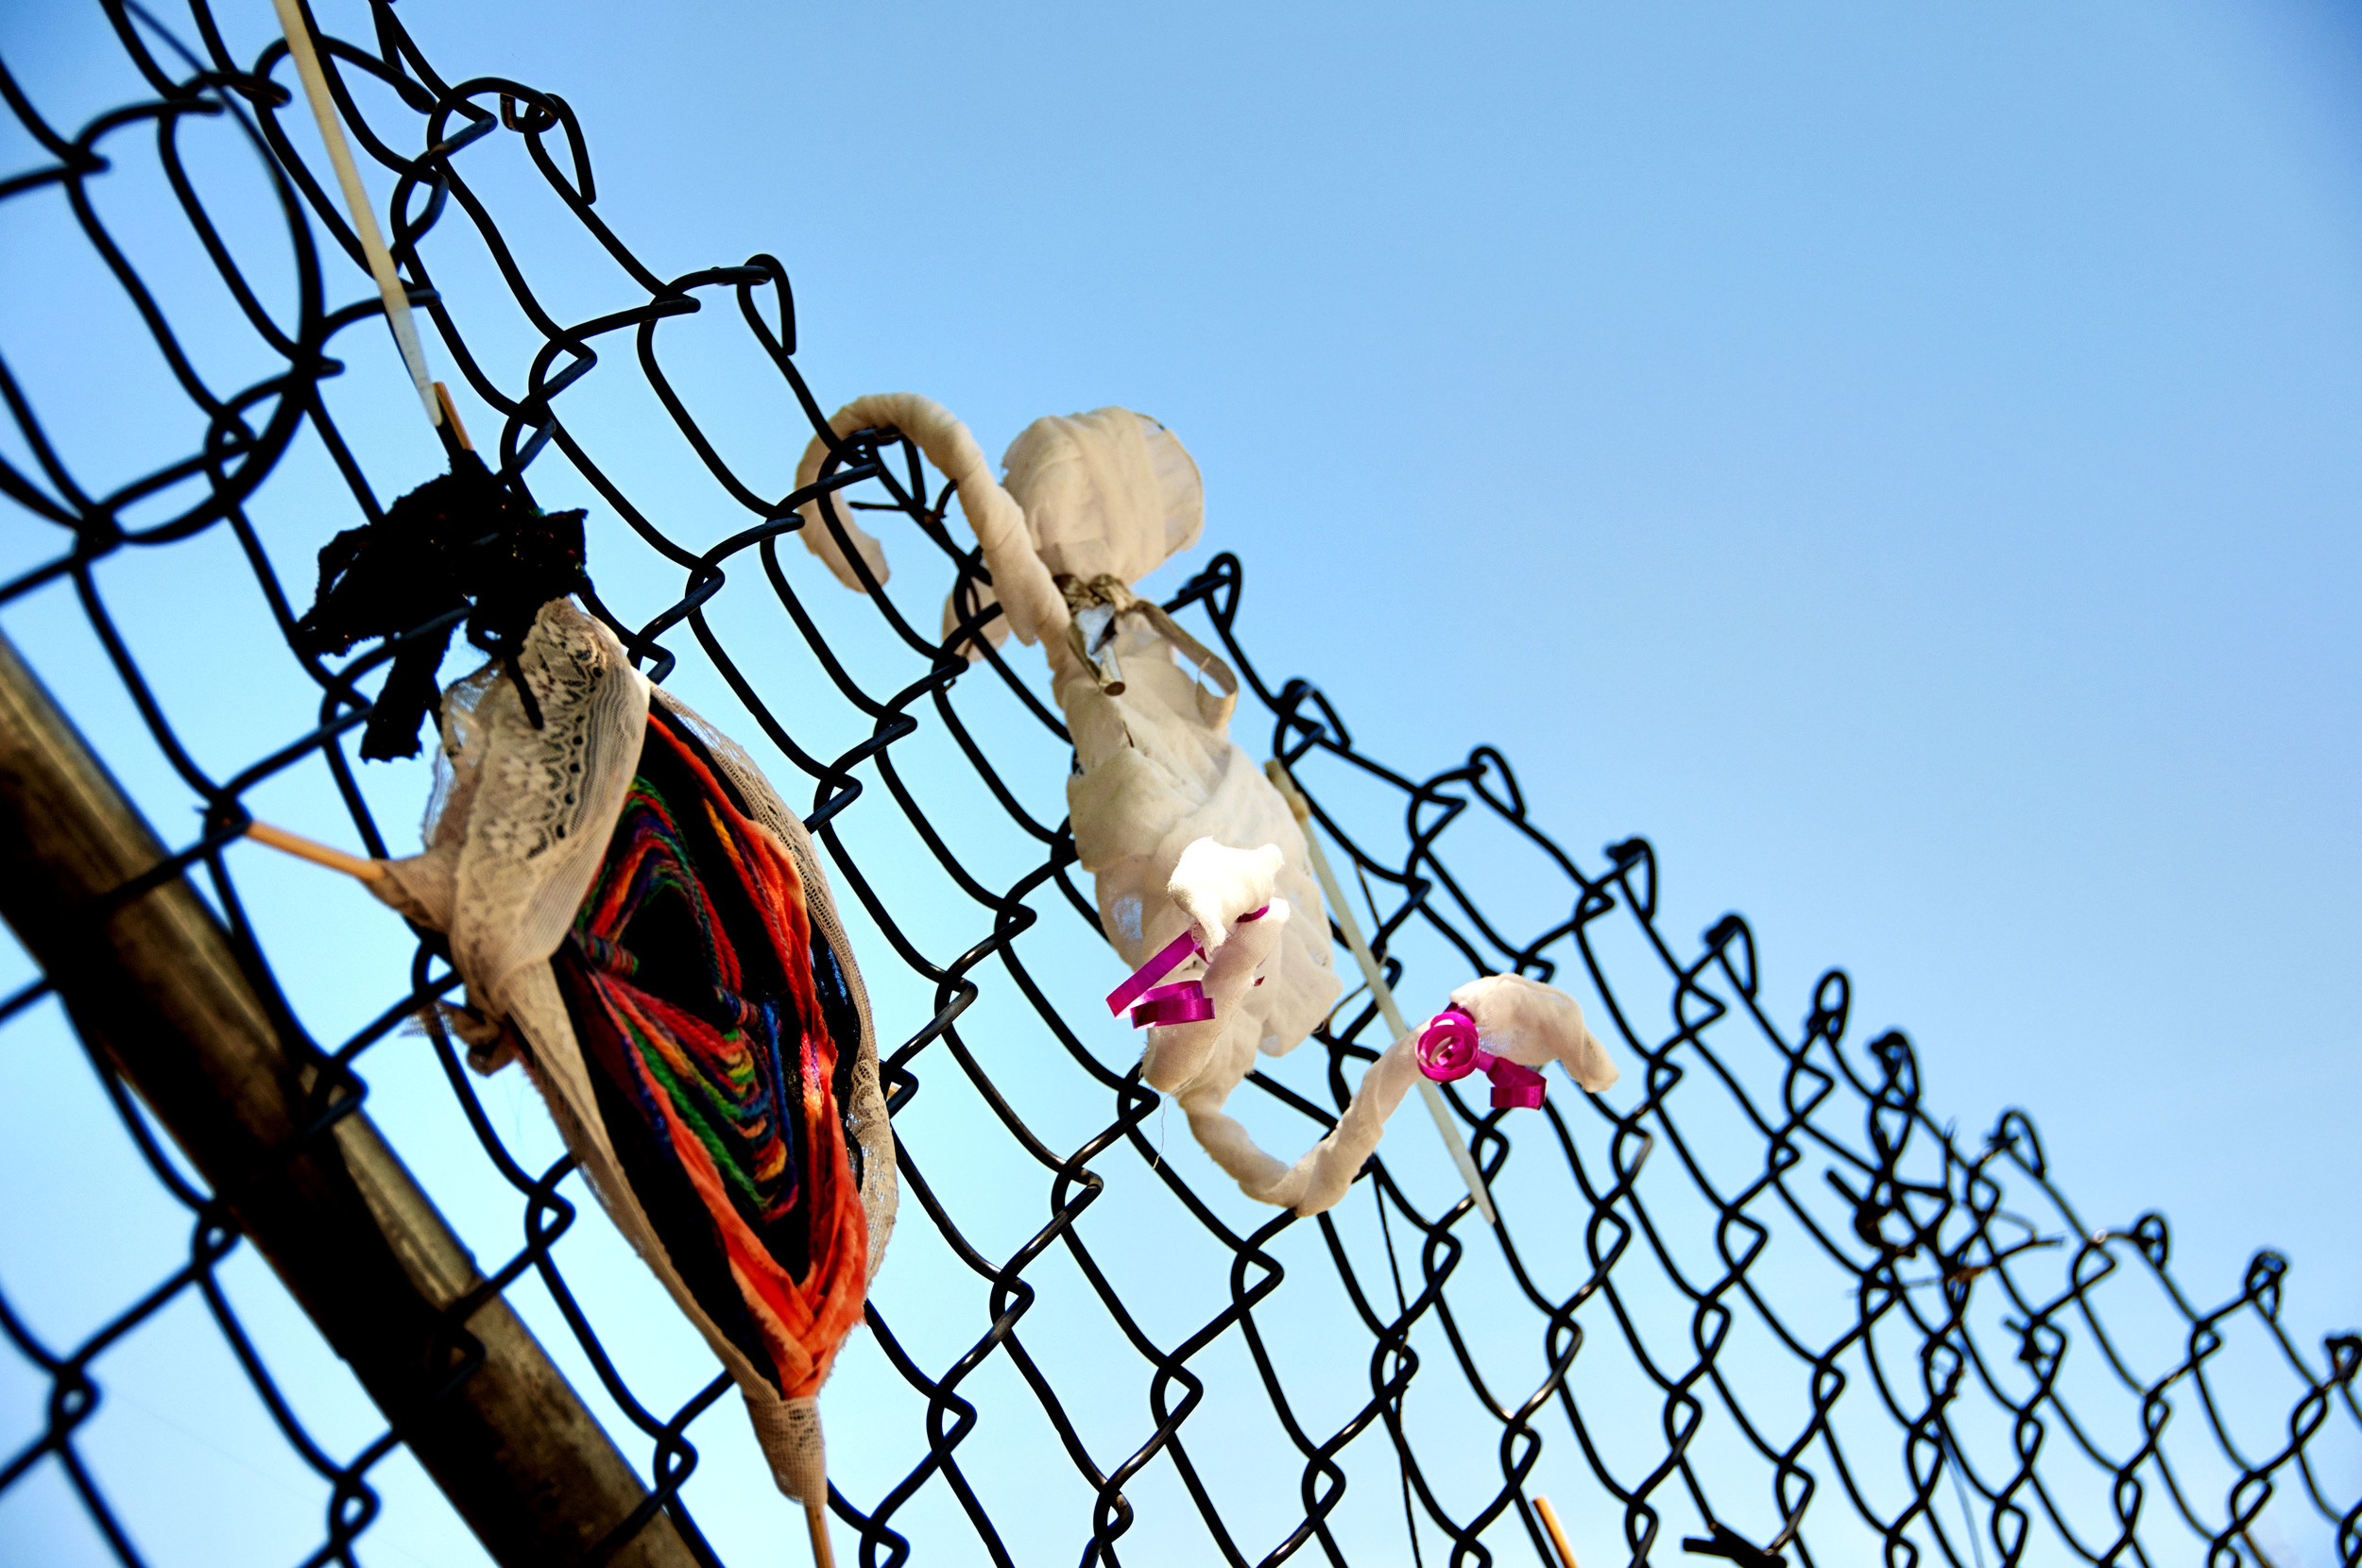 Ghost and knit art on Carrboro Fence - Weaver Street & N. Greensboro Street